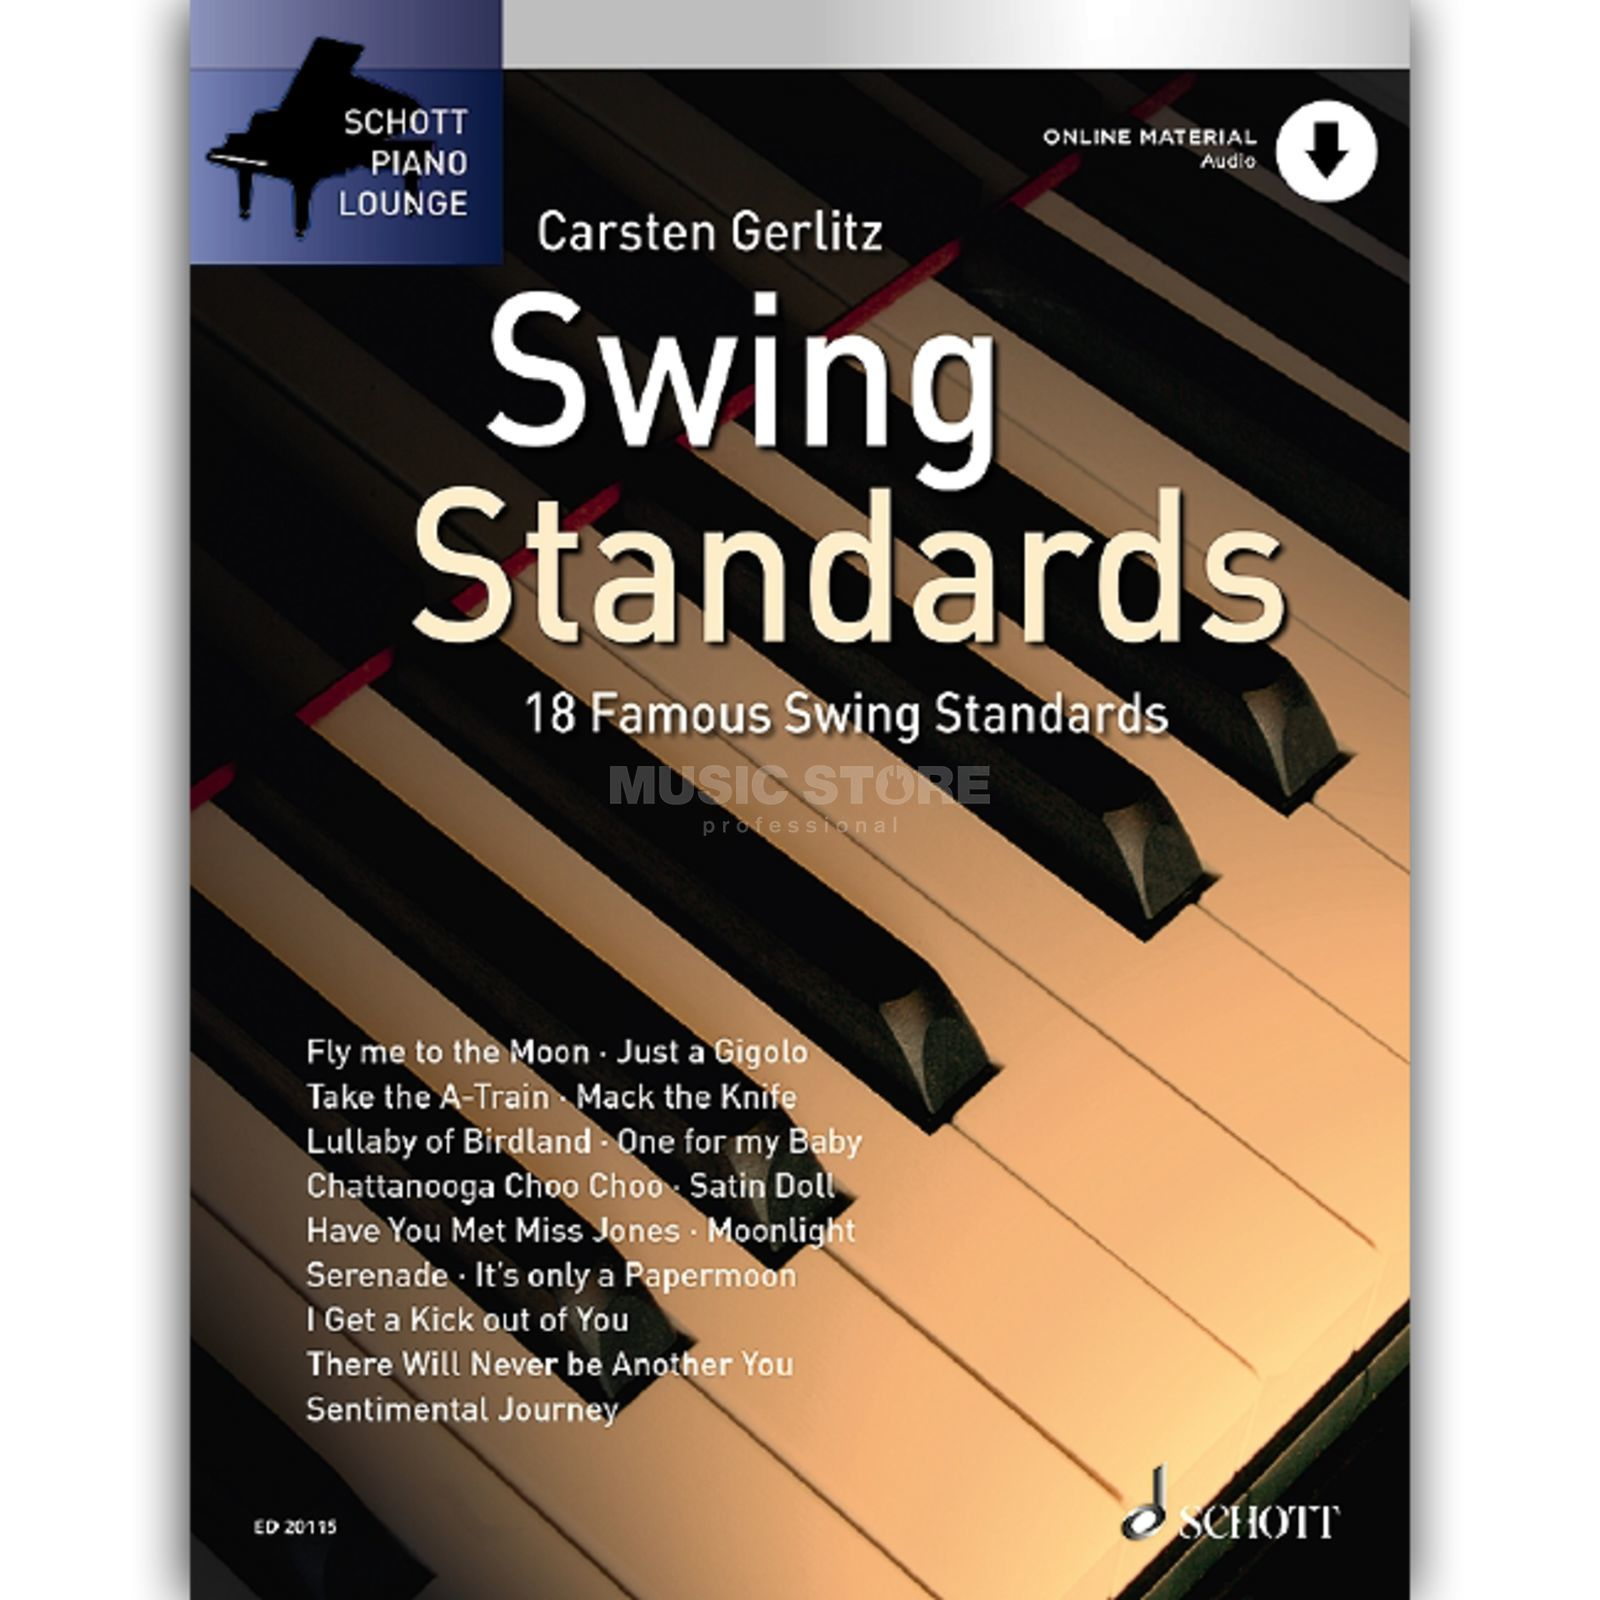 Schott Music Swing Standards Product Image